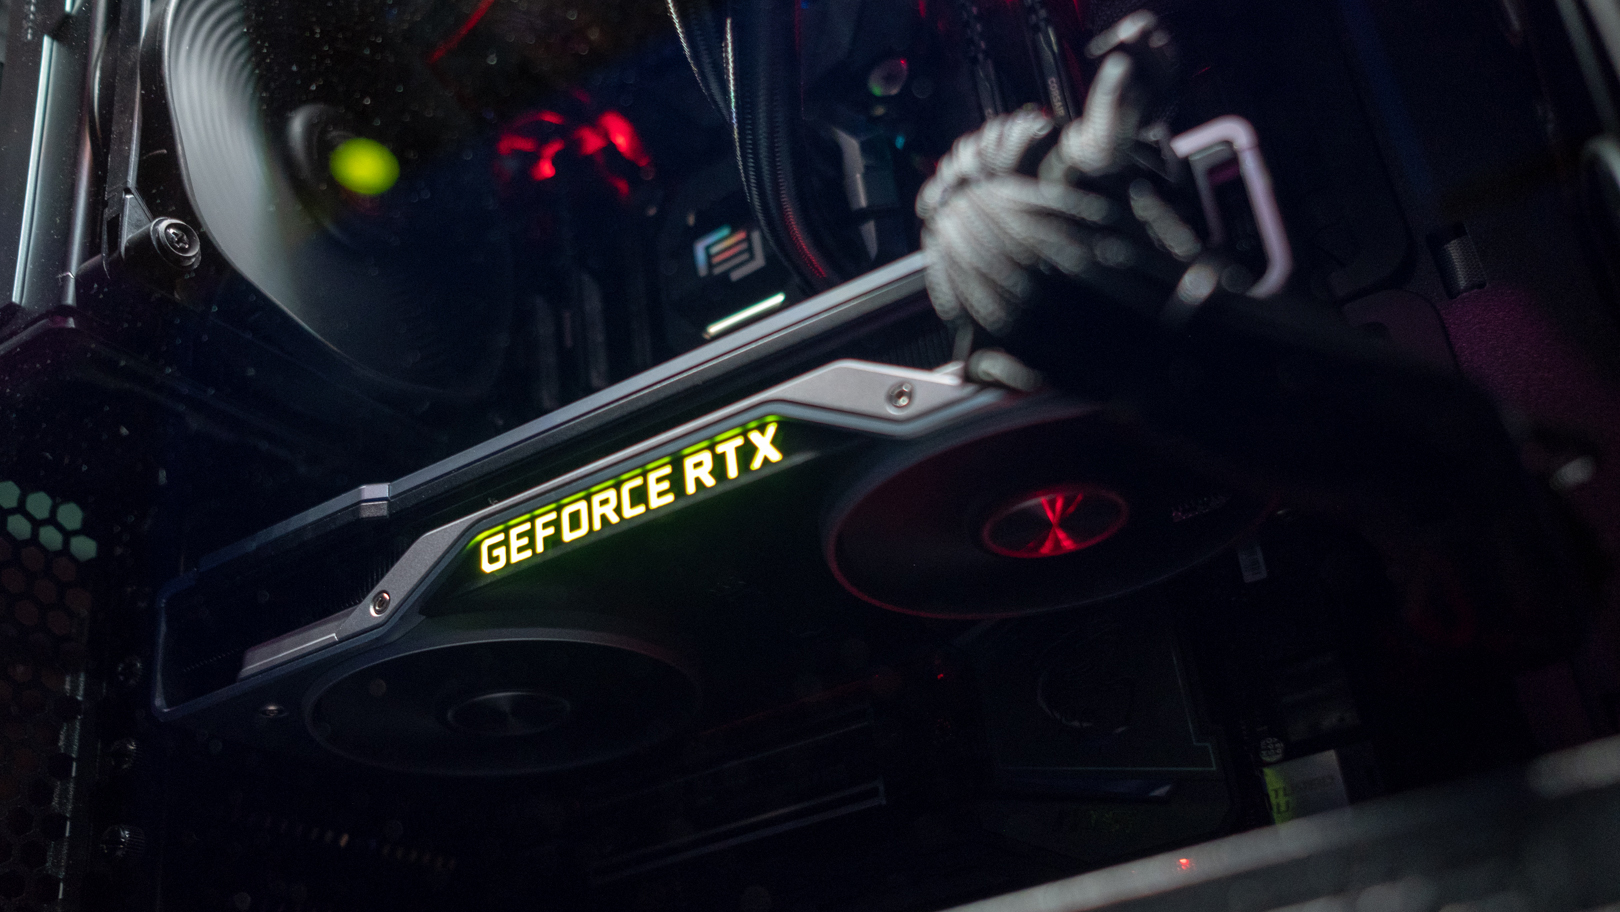 Nvidia GeForce RTX 3000 graphics cards could make 4K graphics the norm for PC gaming